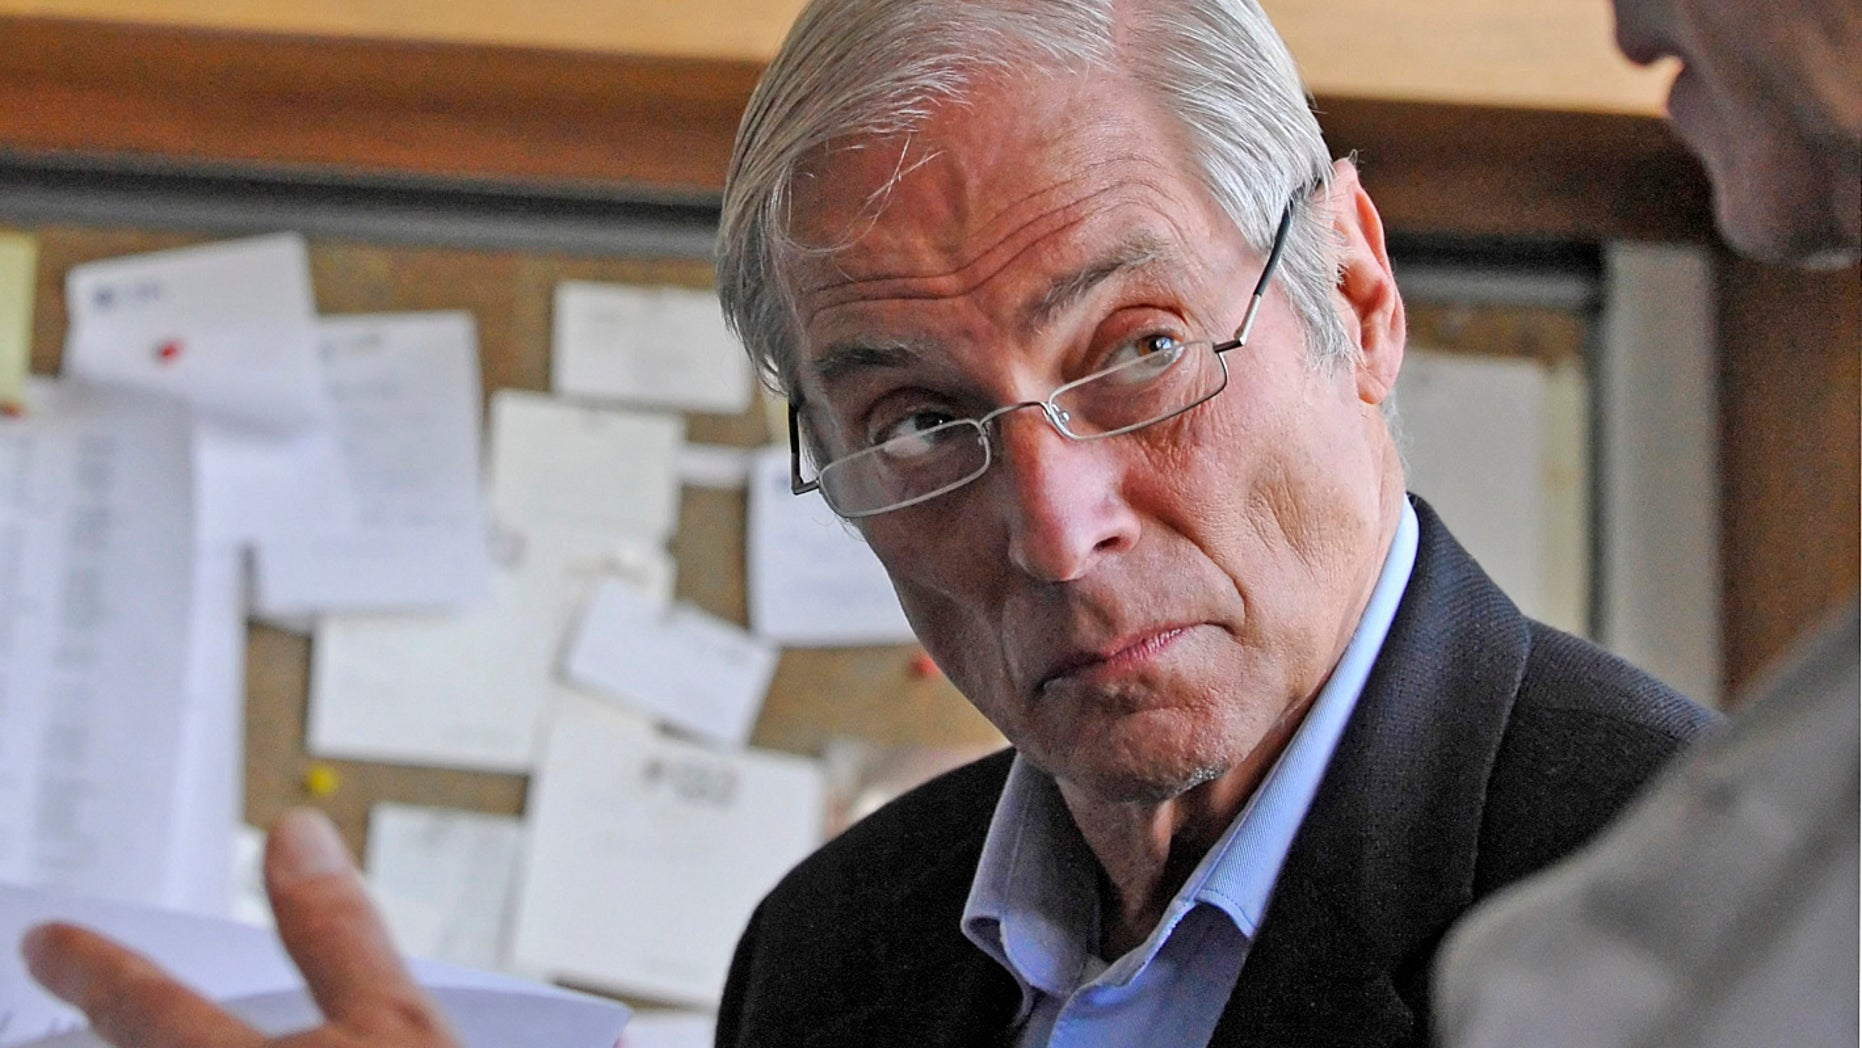 March 24, 2010. Bob Simon, speaks with a news producer at the CBS Broadcast Center in New York.